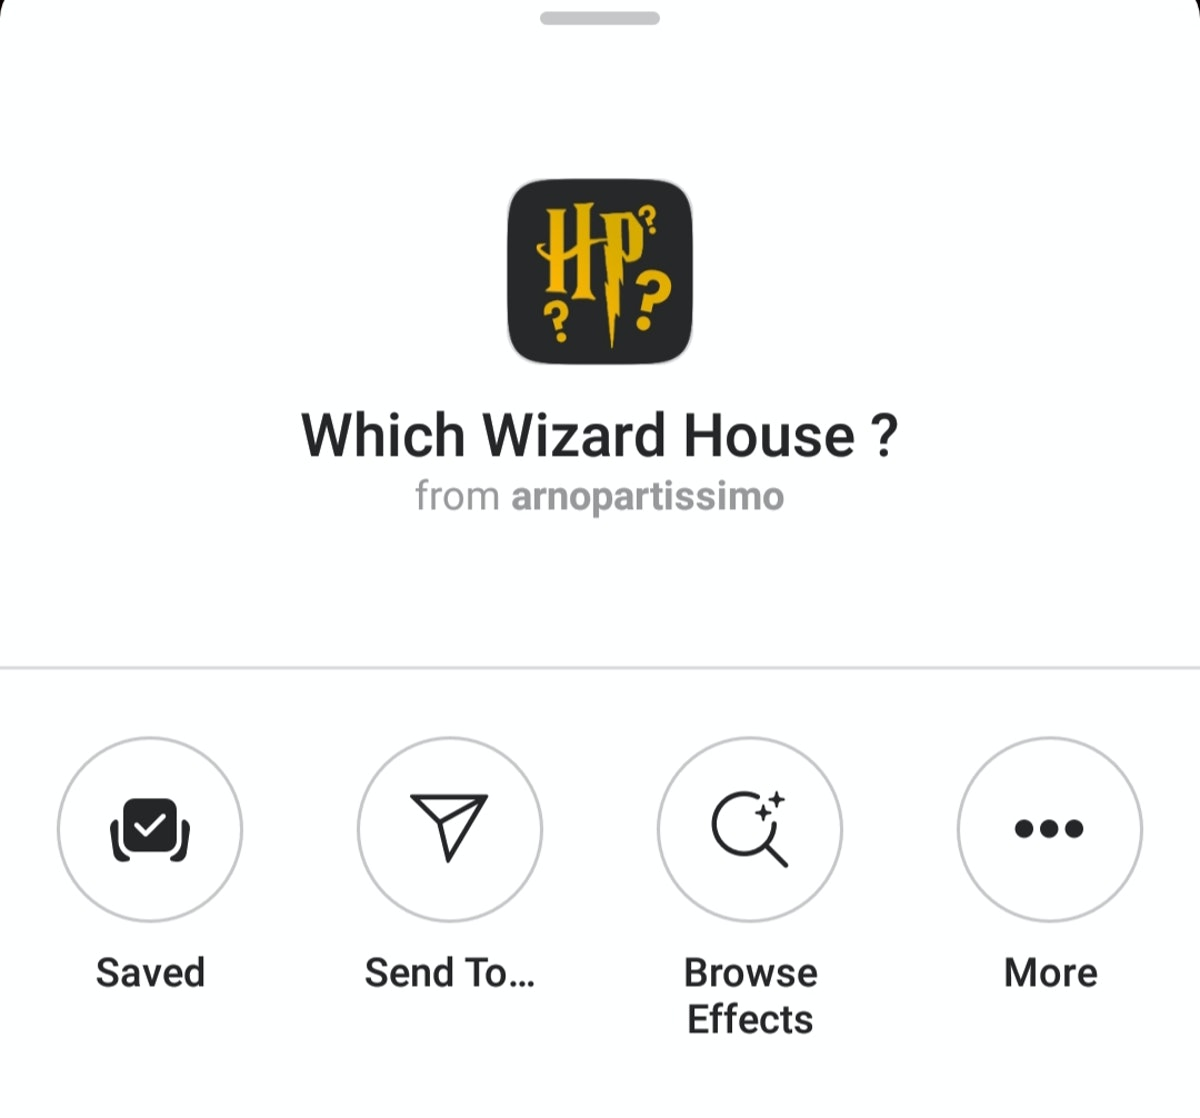 Here's How To Get The 'Harry Potter' Instagram Filters for a magical time. You can find out which ch...